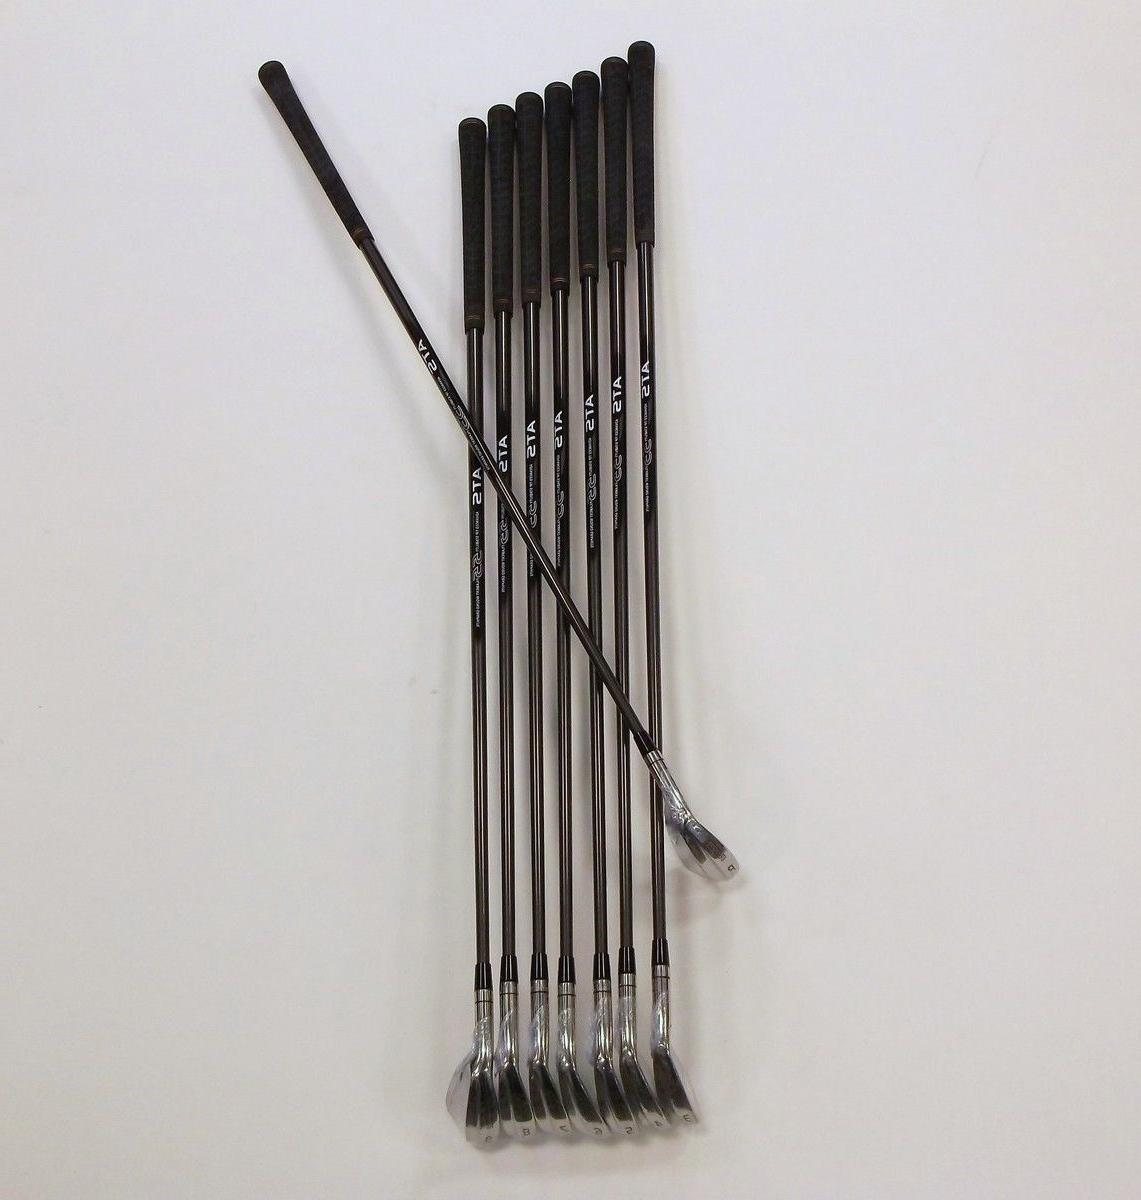 Giant Golf G100 Graphite Shaft Right High Performance NEW